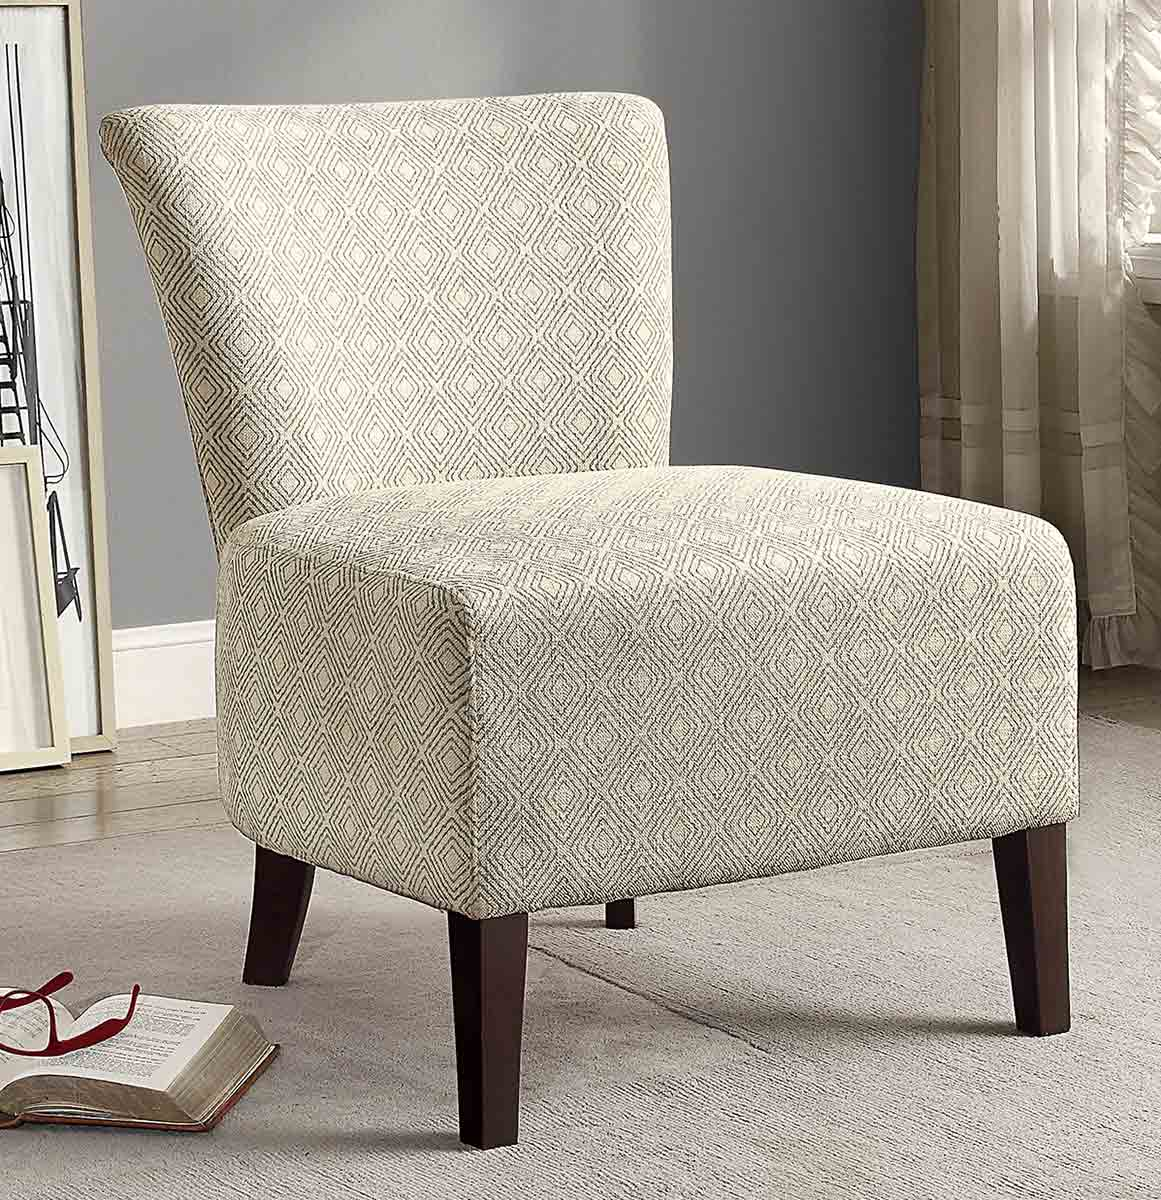 Homelegance Cotati Accent Chair - Medium Blue/Cream